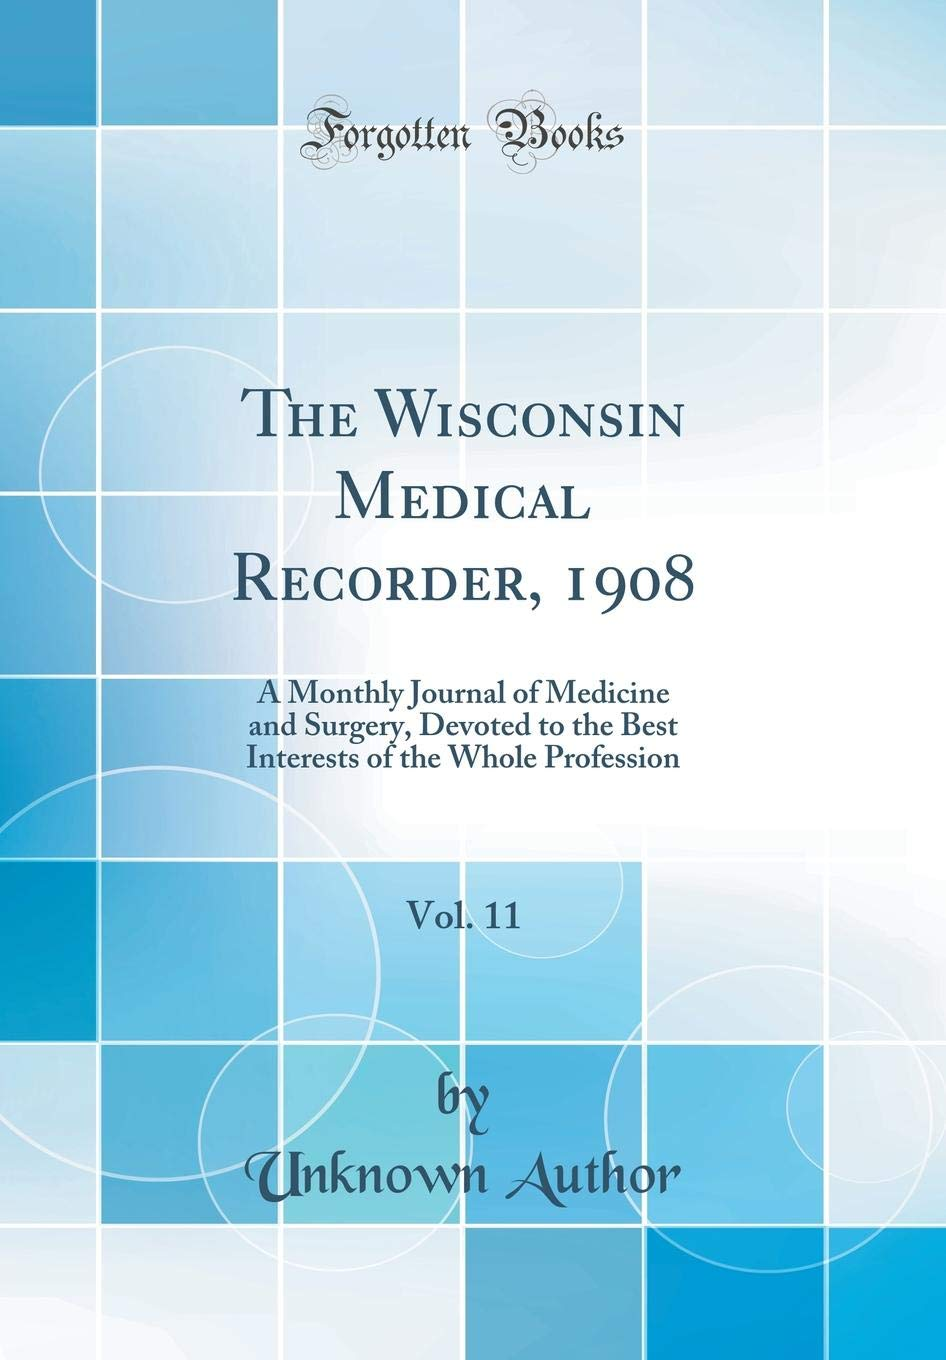 Download The Wisconsin Medical Recorder, 1908, Vol. 11: A Monthly Journal of Medicine and Surgery, Devoted to the Best Interests of the Whole Profession (Classic Reprint) PDF